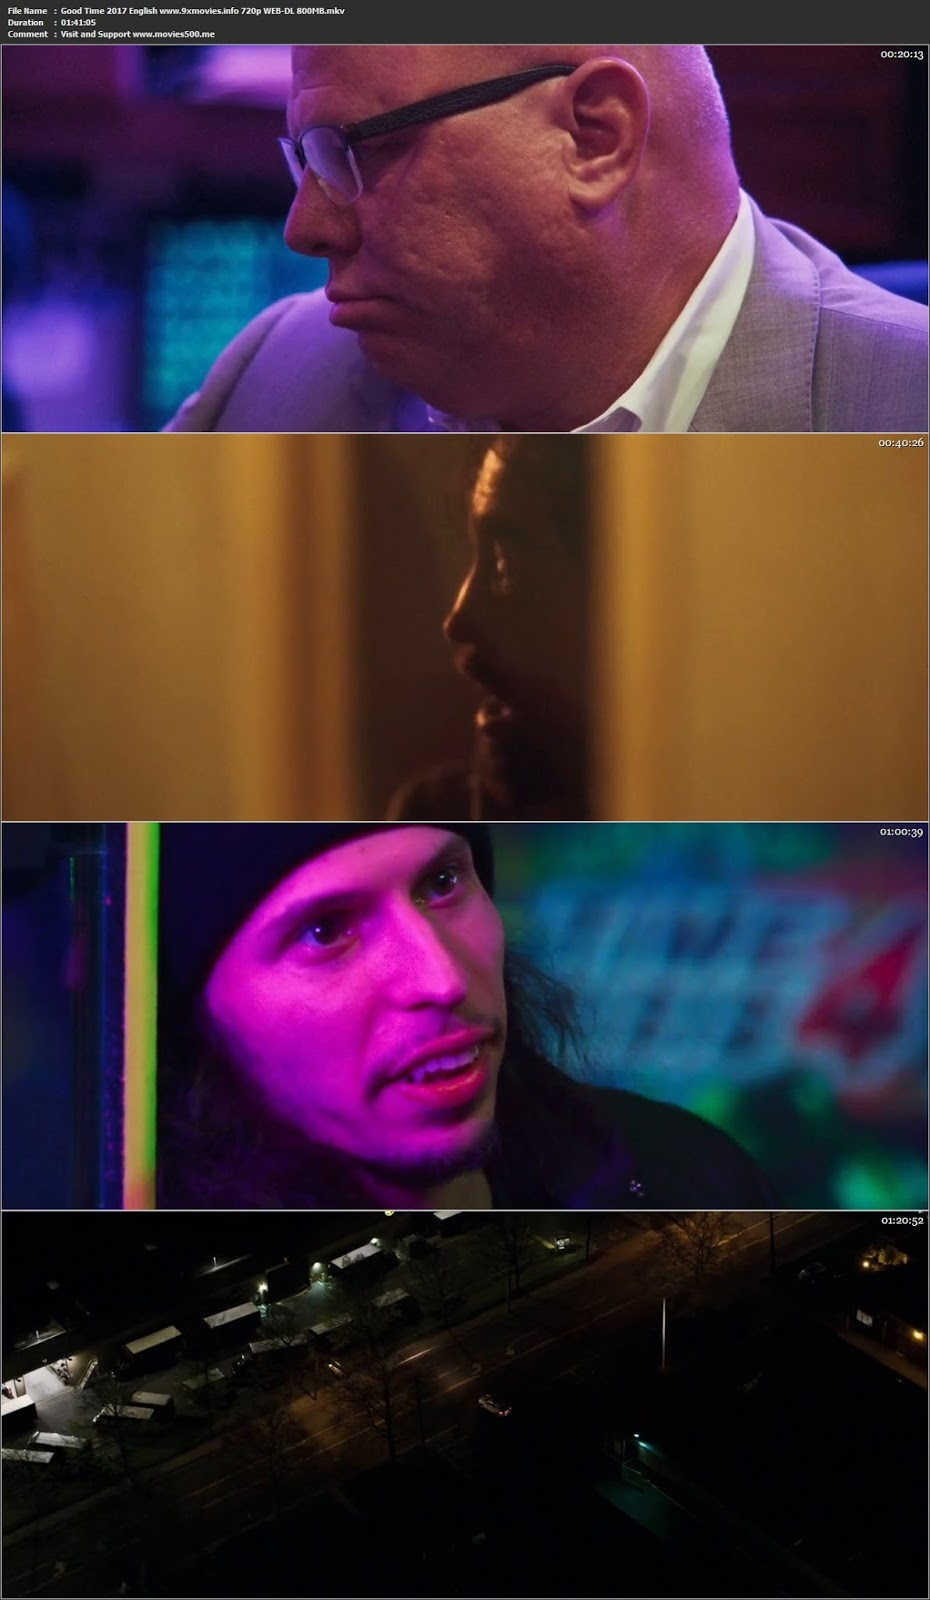 Good Time 2017 English Full Movie WEB DL 720p at softwaresonly.com